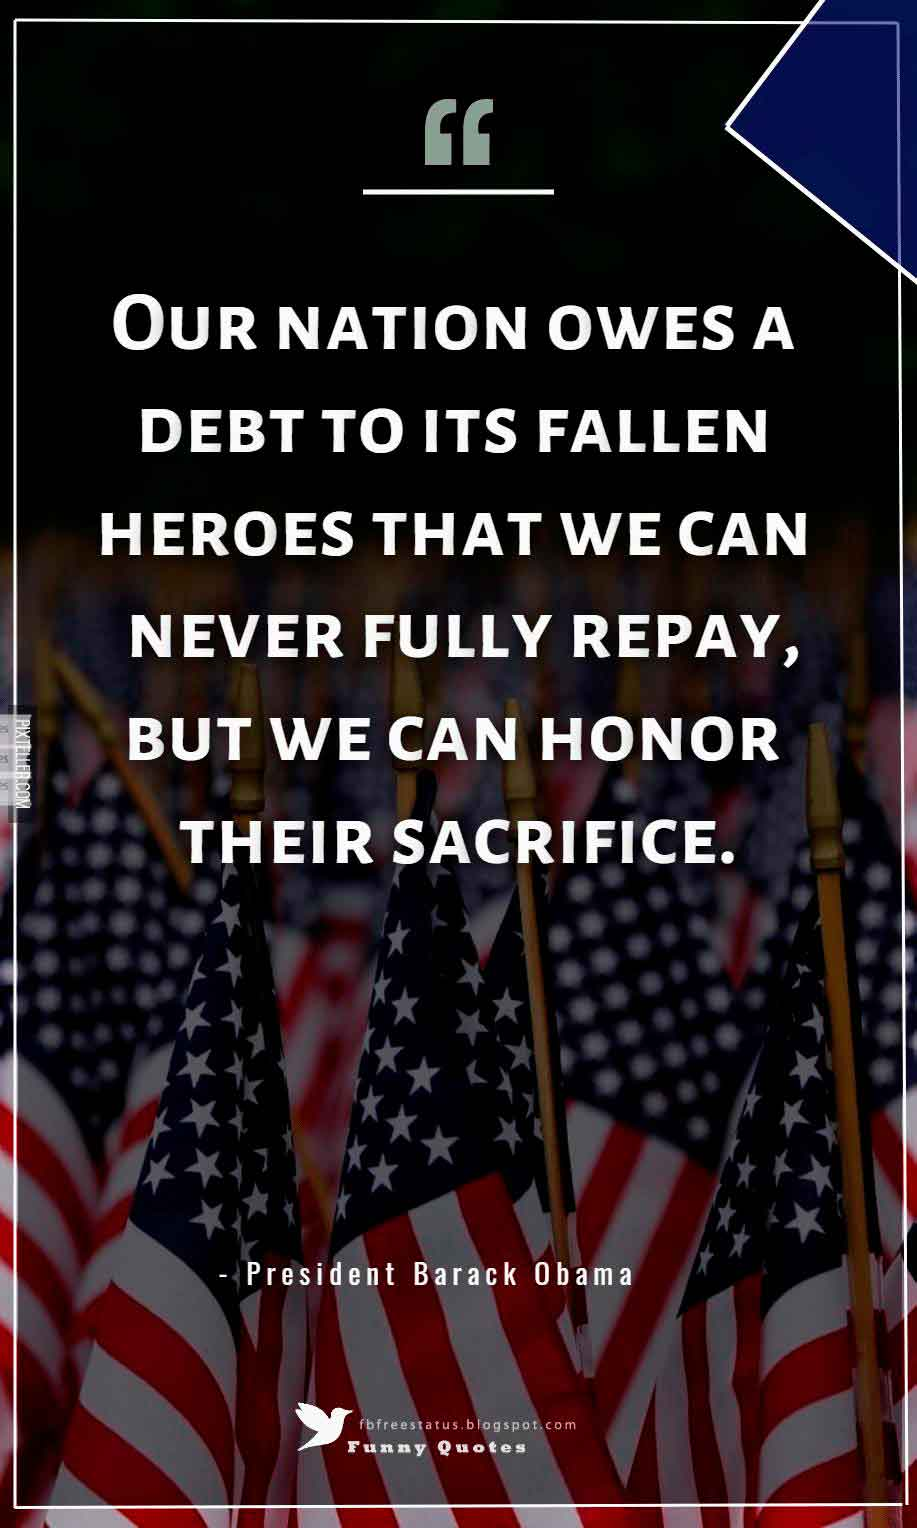 """Our nation owes a debt to its fallen heroes that we can never fully repay, but we can honor their sacrifice."" ― President Barack Obama"